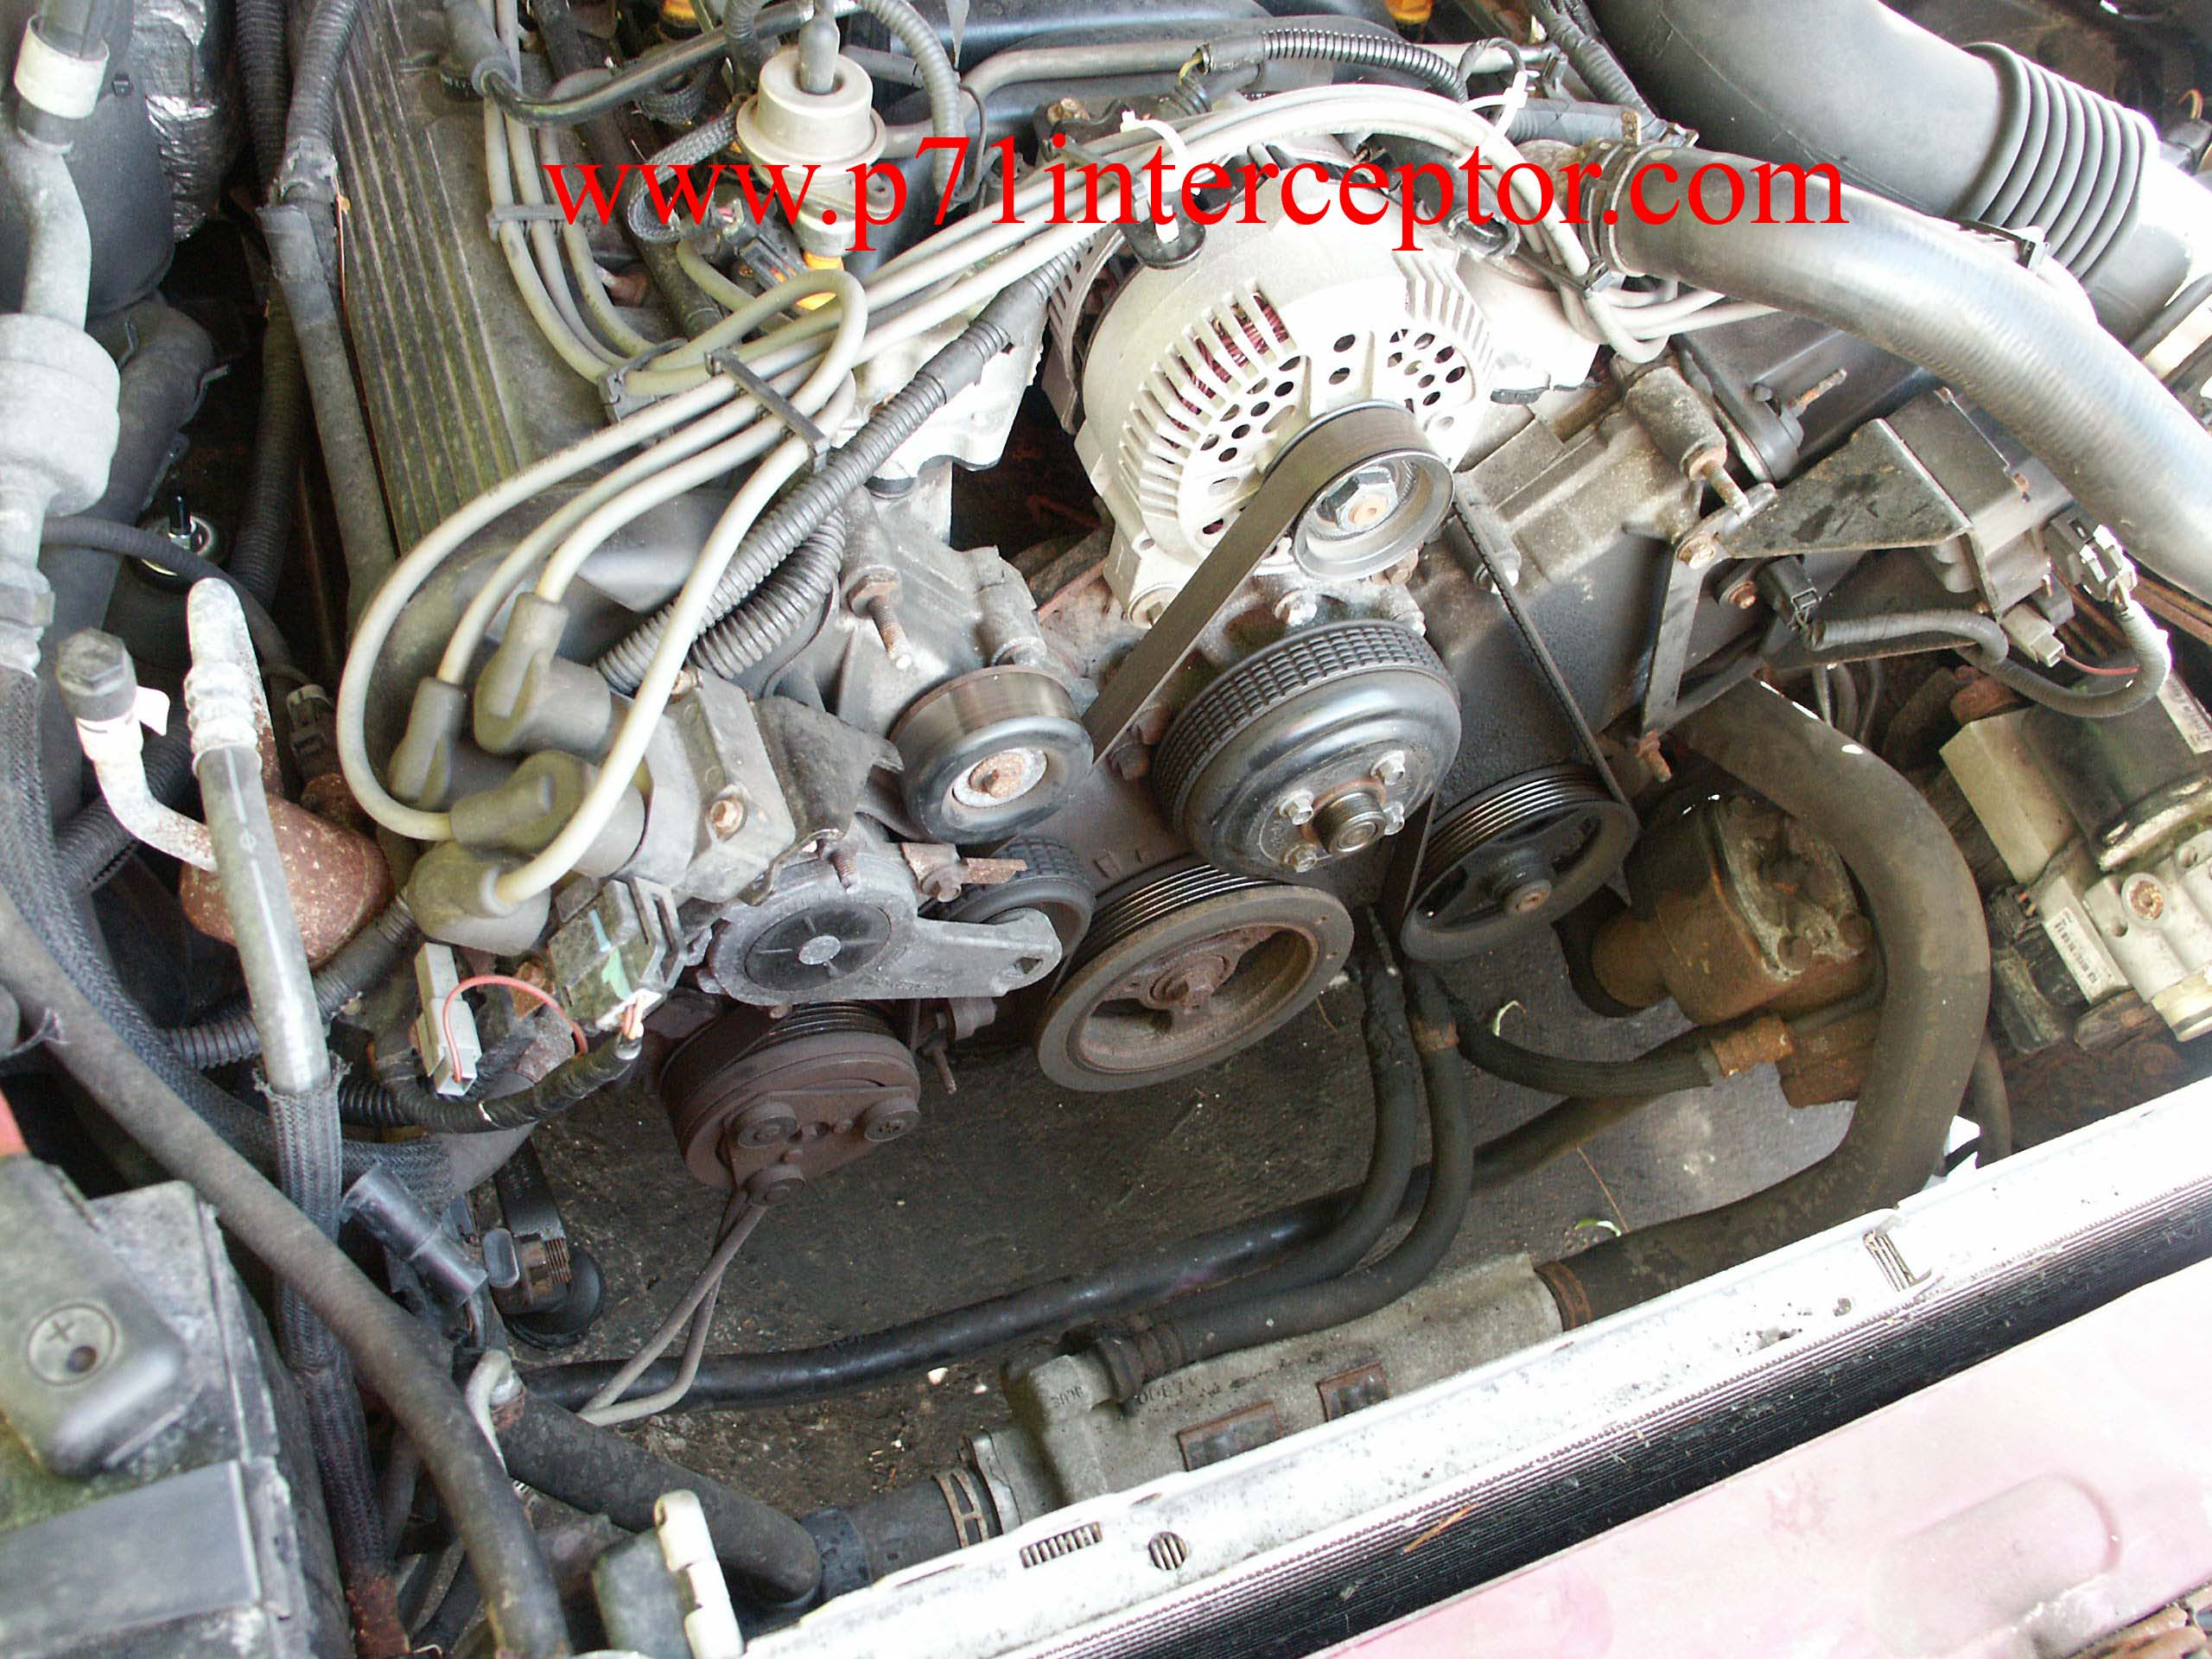 09 ENGINE Fixing  mon Vacuum Leaks further Index moreover 7o8ne Grand Cherokee 93 Jeep Grand Cherokee 4 0l together with Np231 additionally 1310 Stop Wandering Ford Super Duty Steering Fix. on 1994 jeep grand cherokee transmission diagram